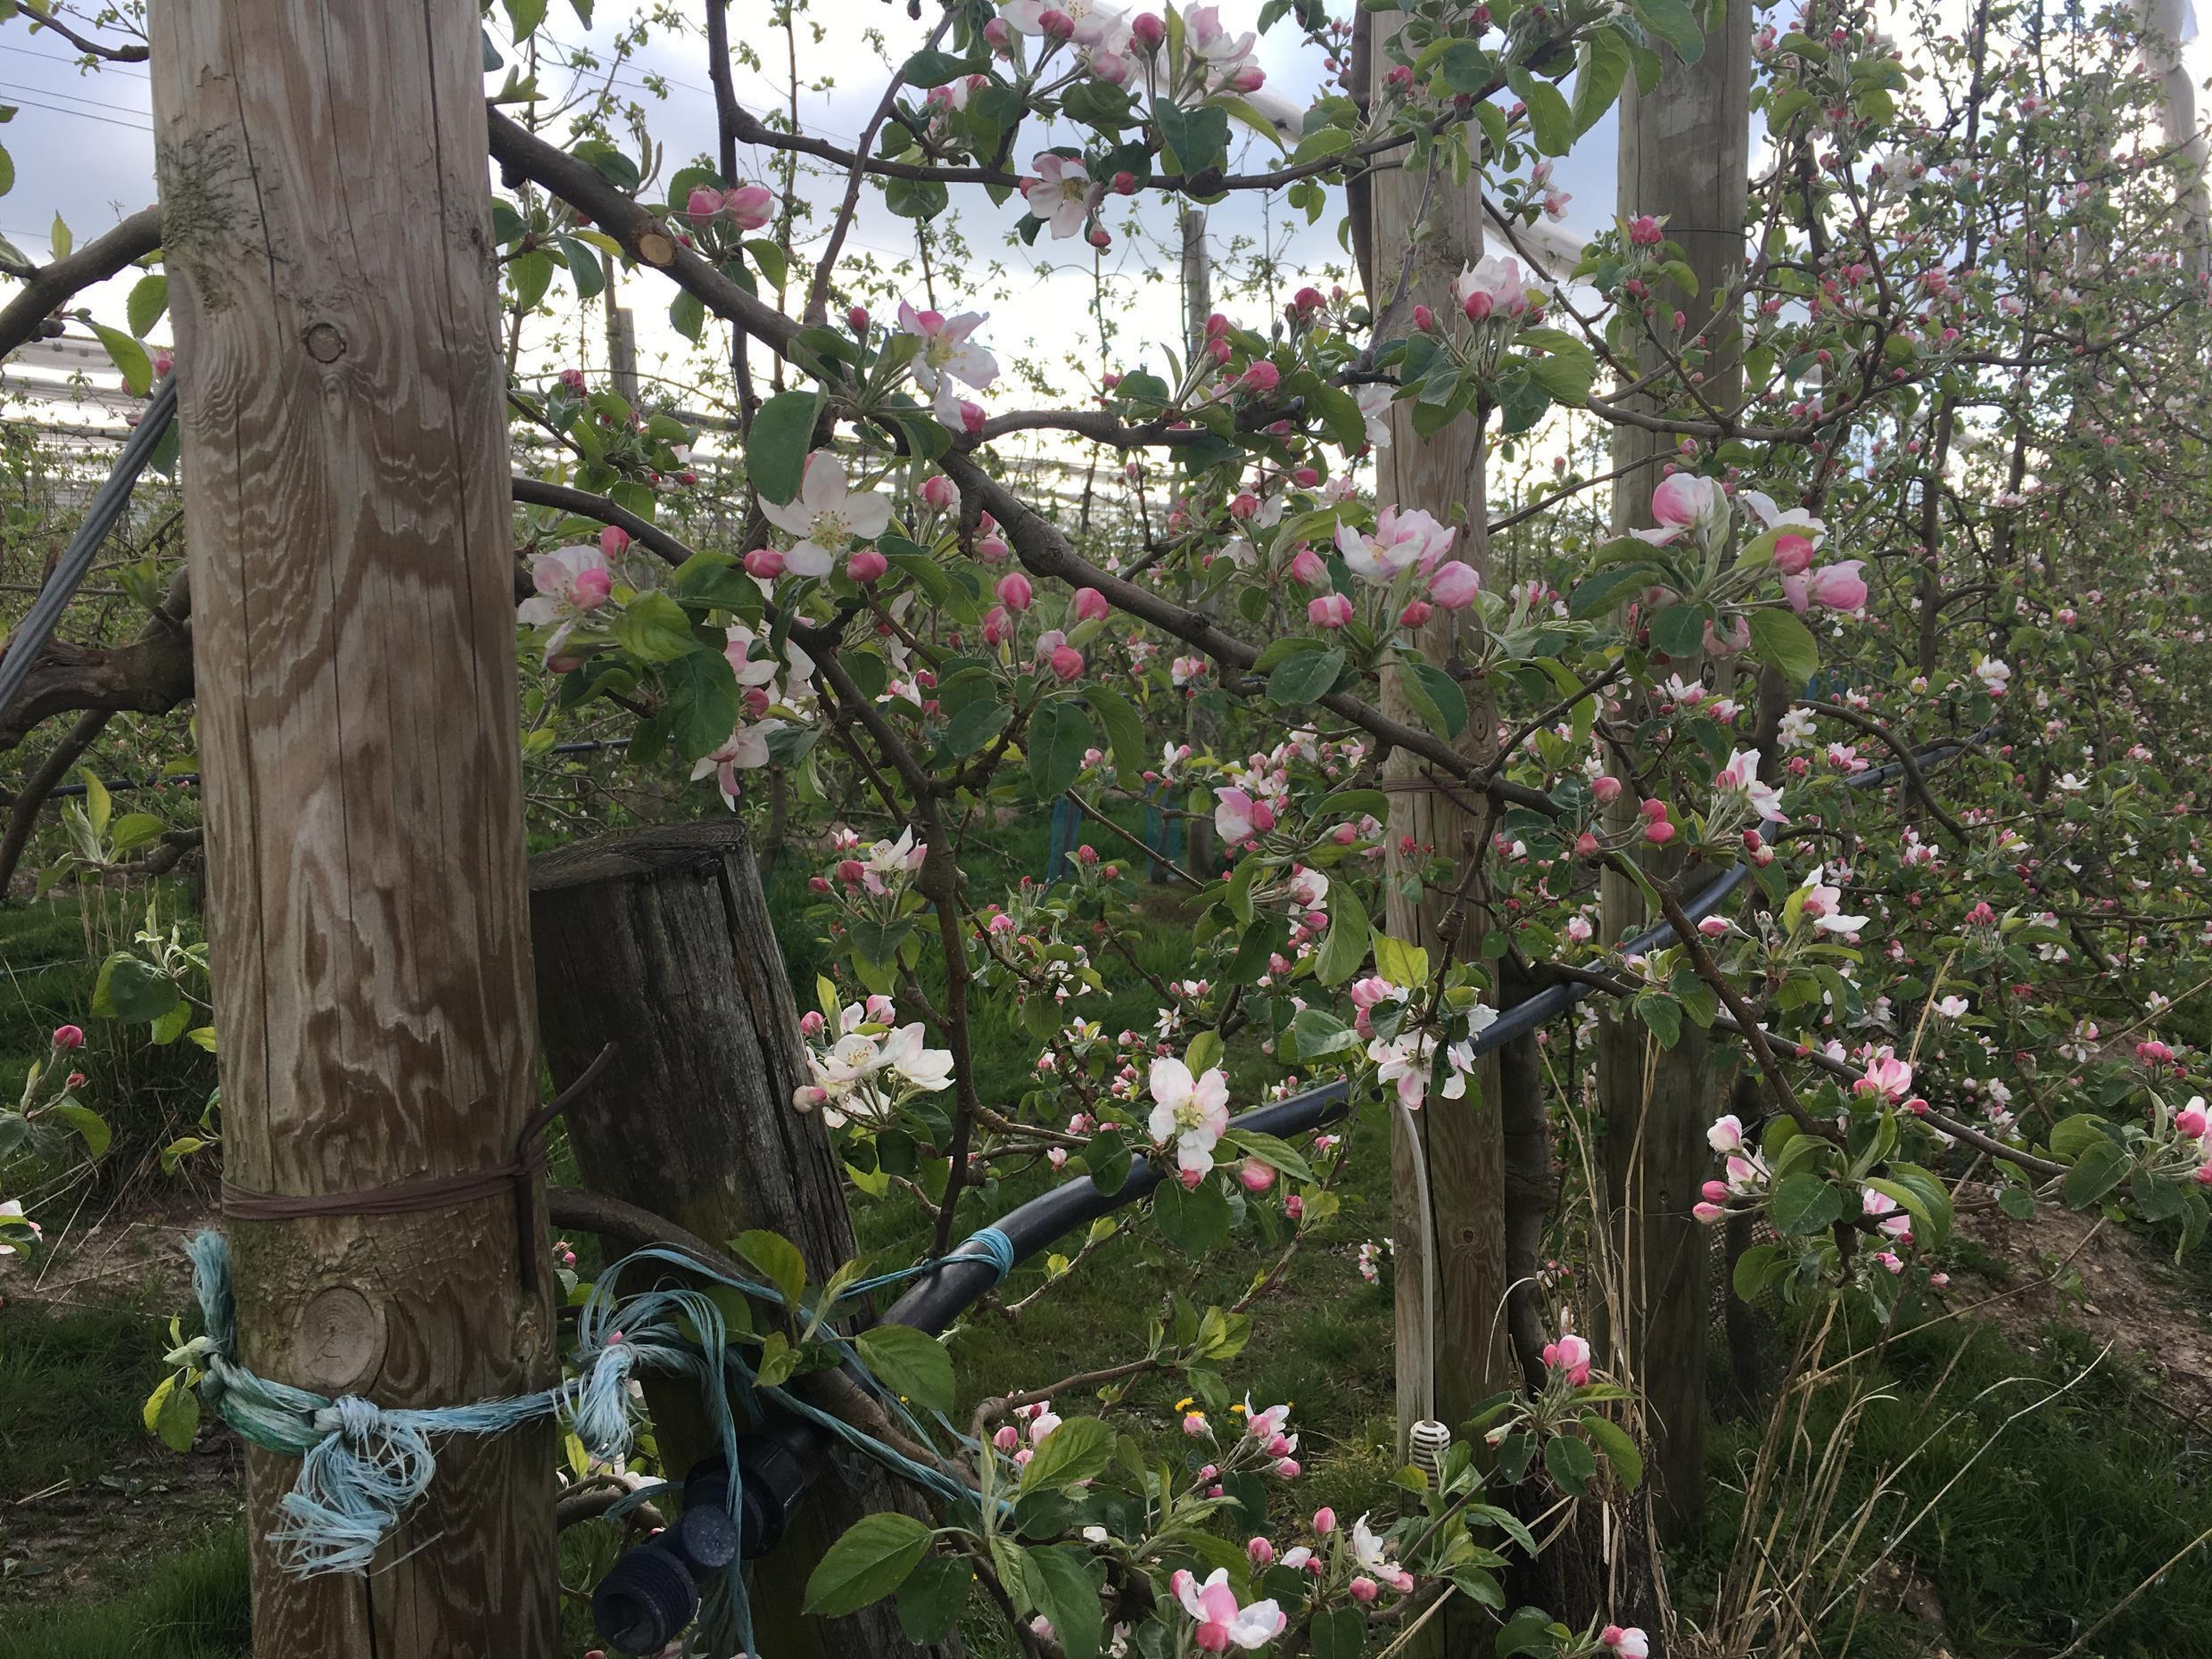 La Morinière has been successful in protecting apple blossom from late frosts